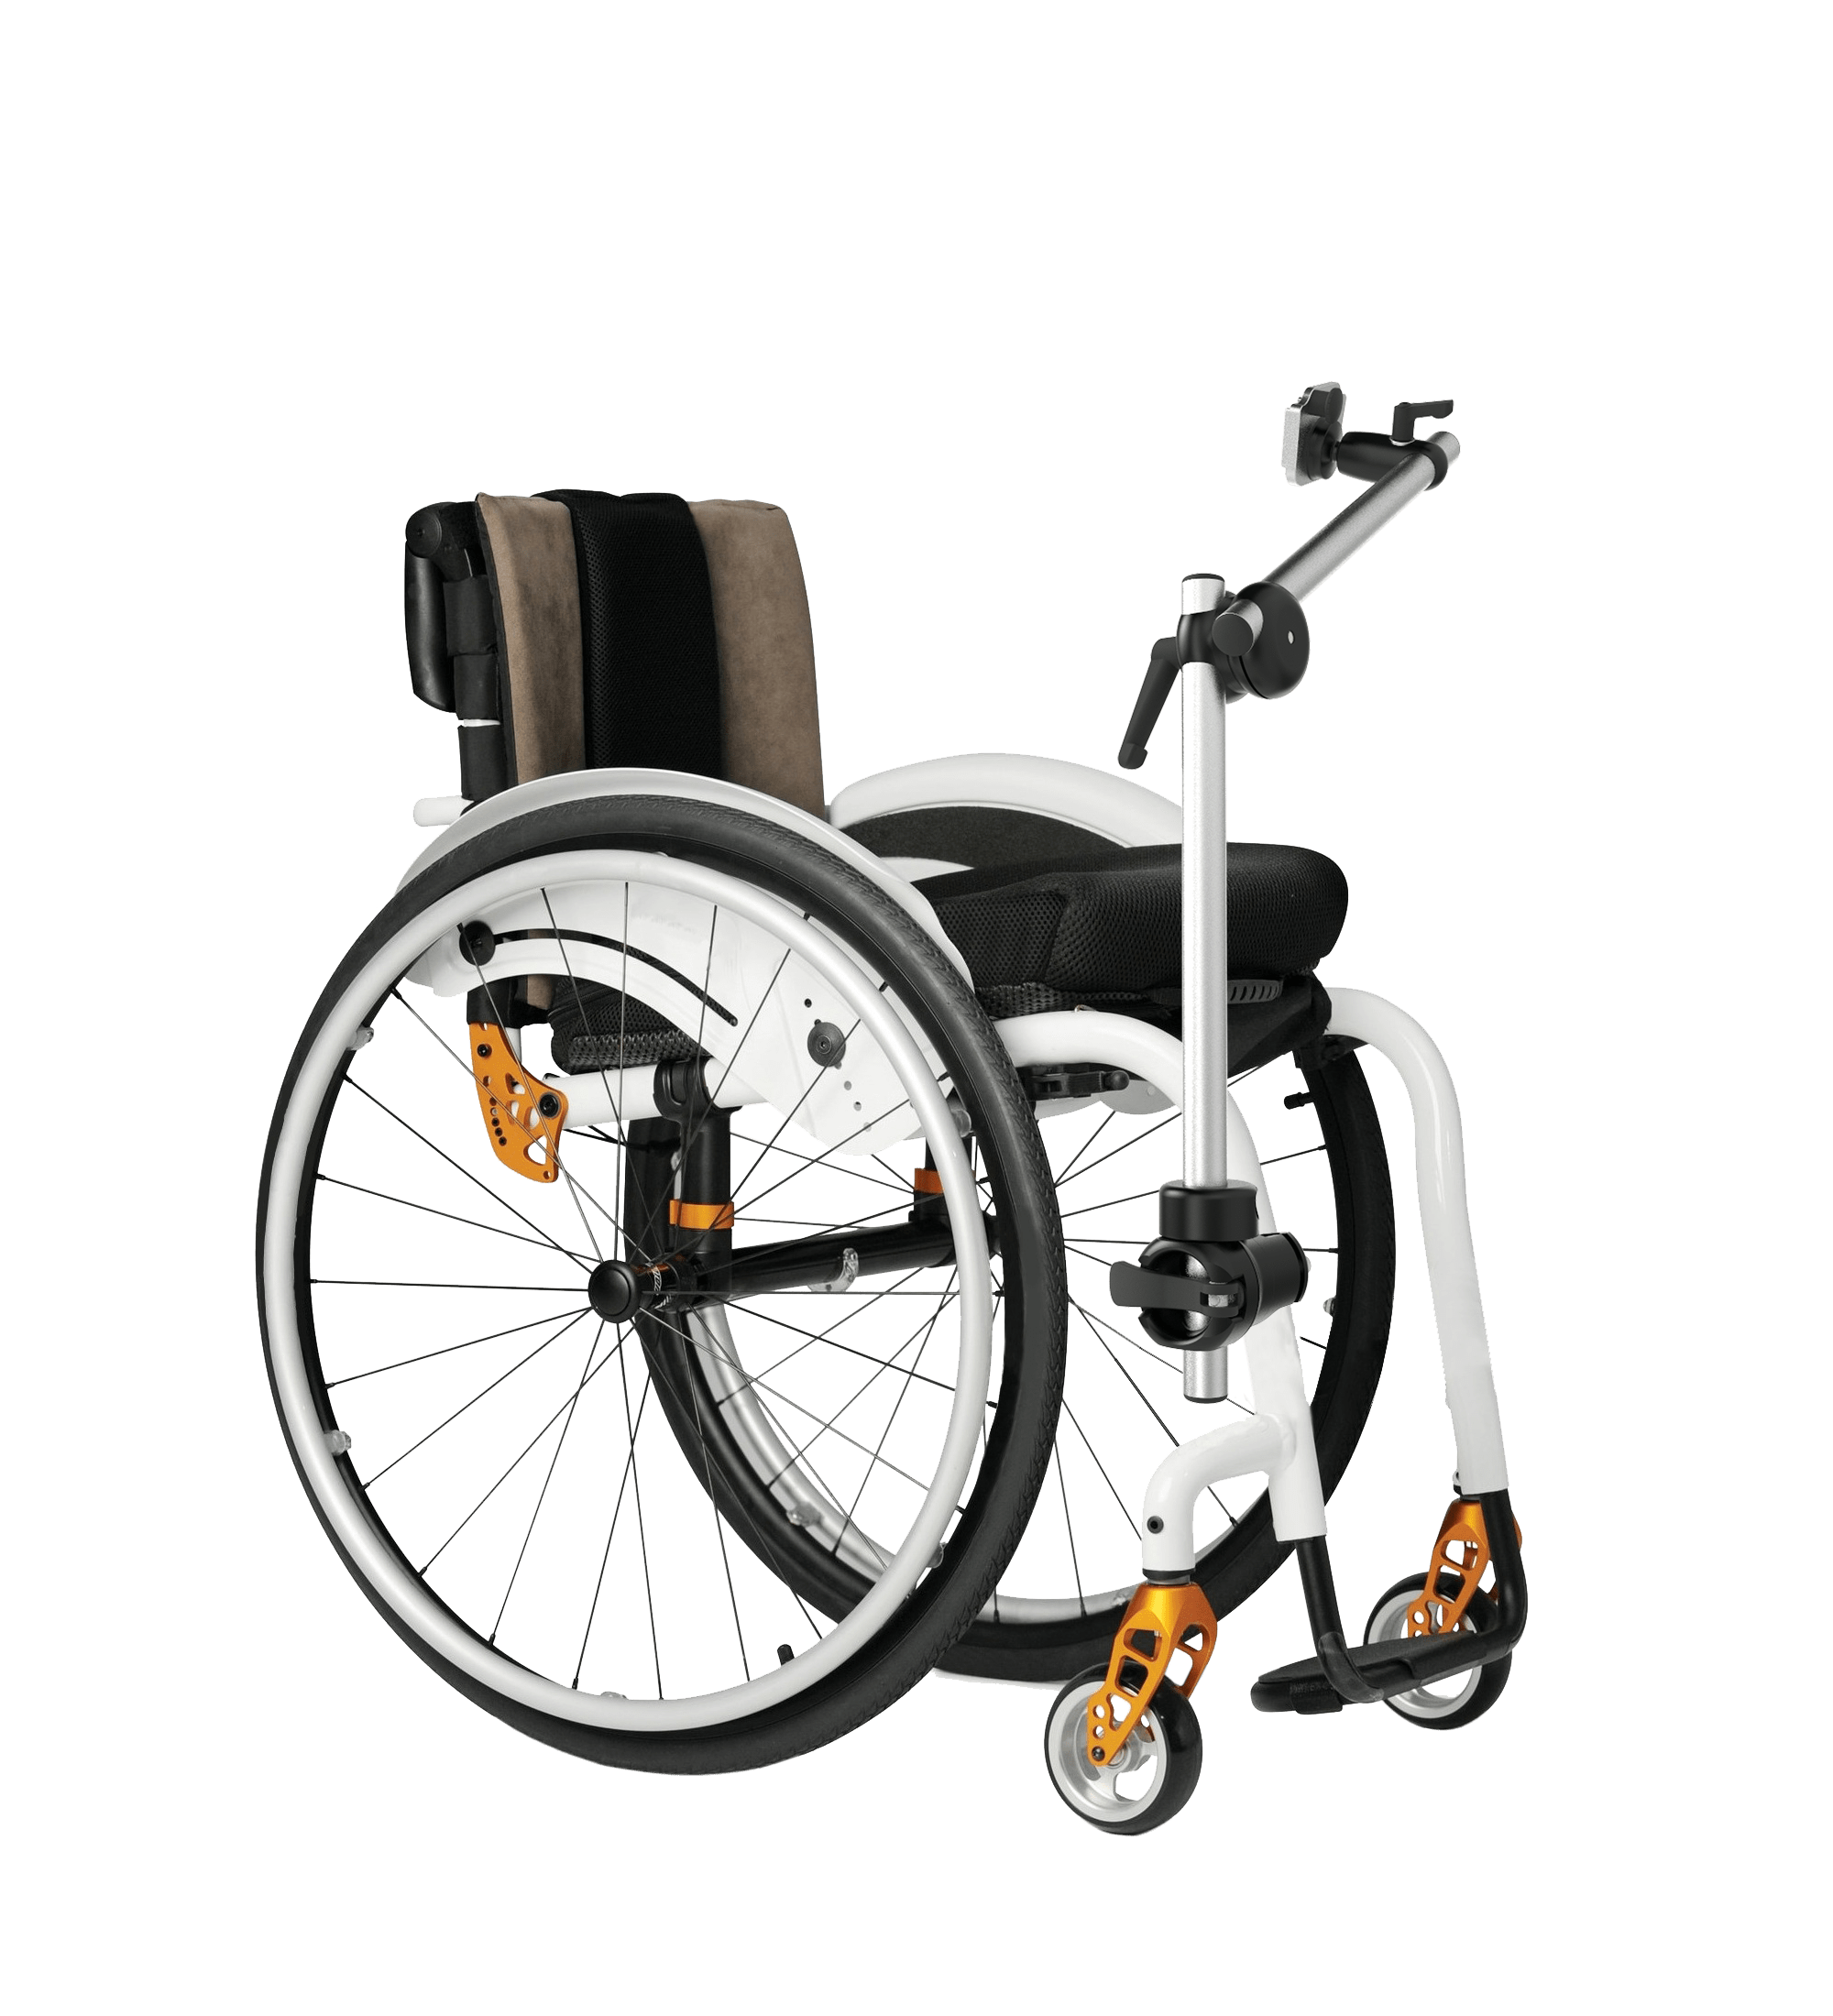 Short wheelchair mount for an AAC device mounted on a wheelchair